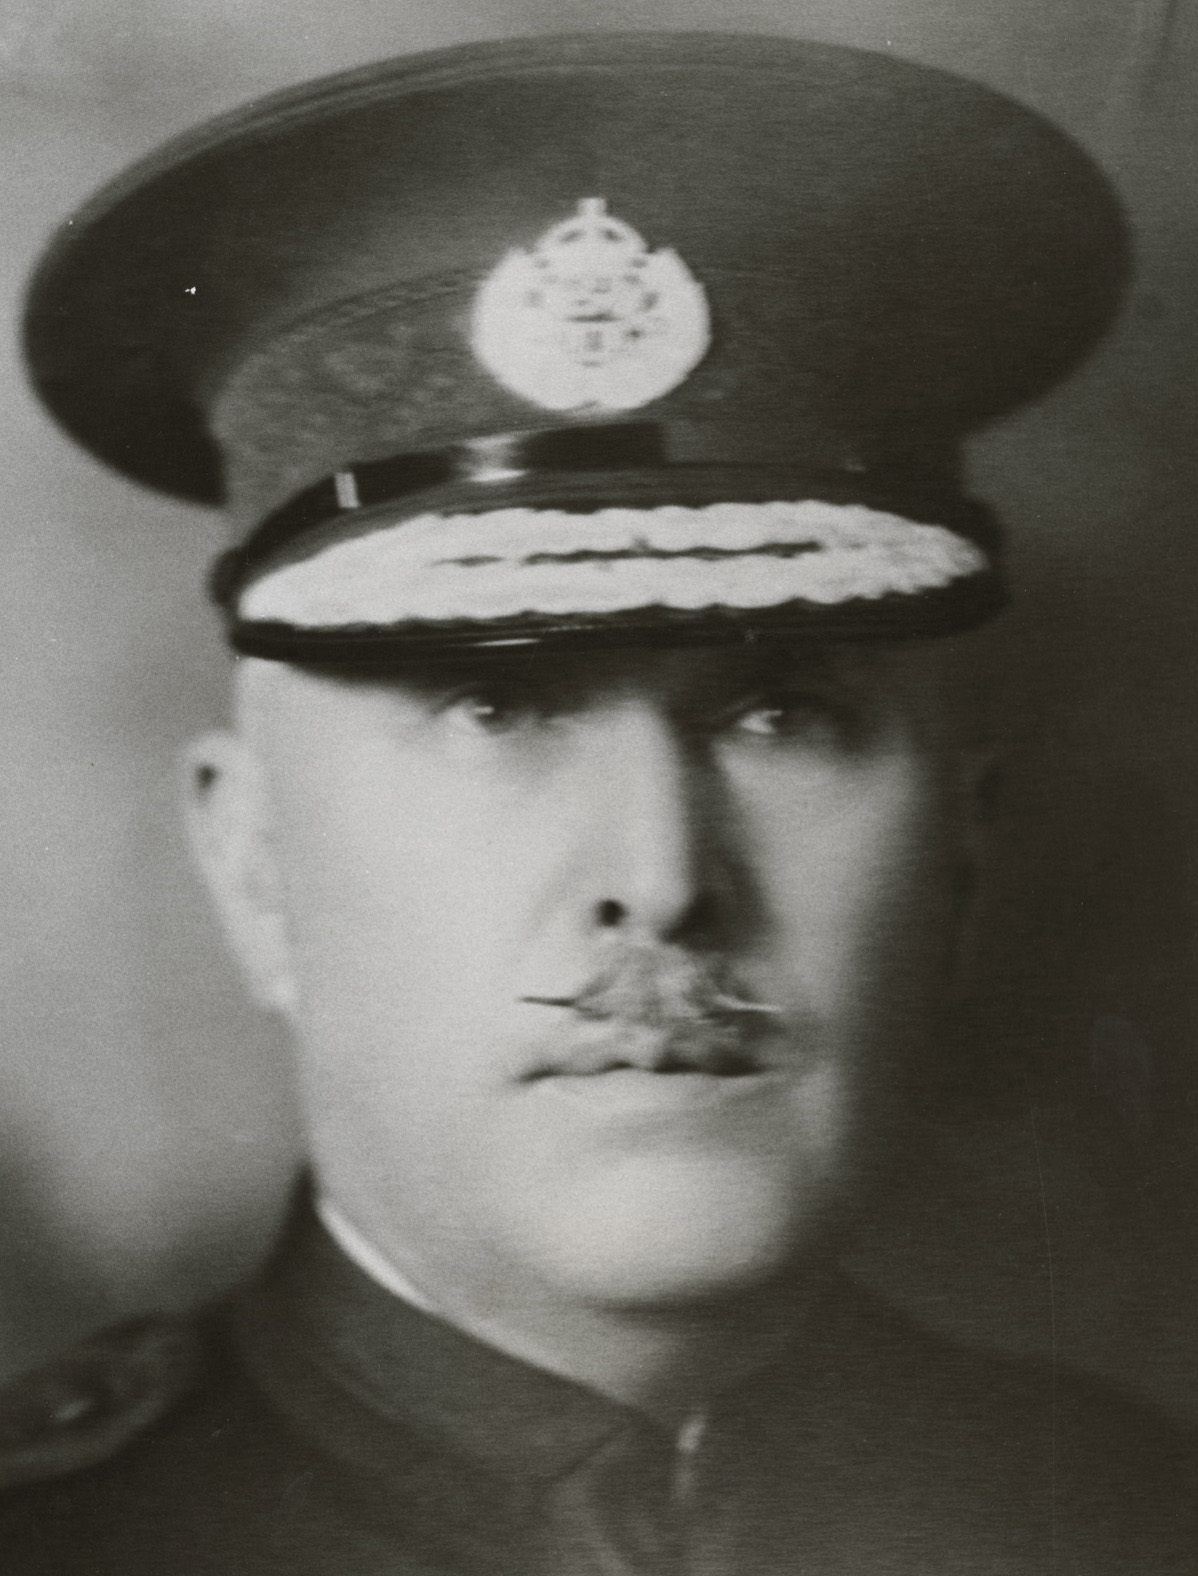 Mustachioed man with police hat on.